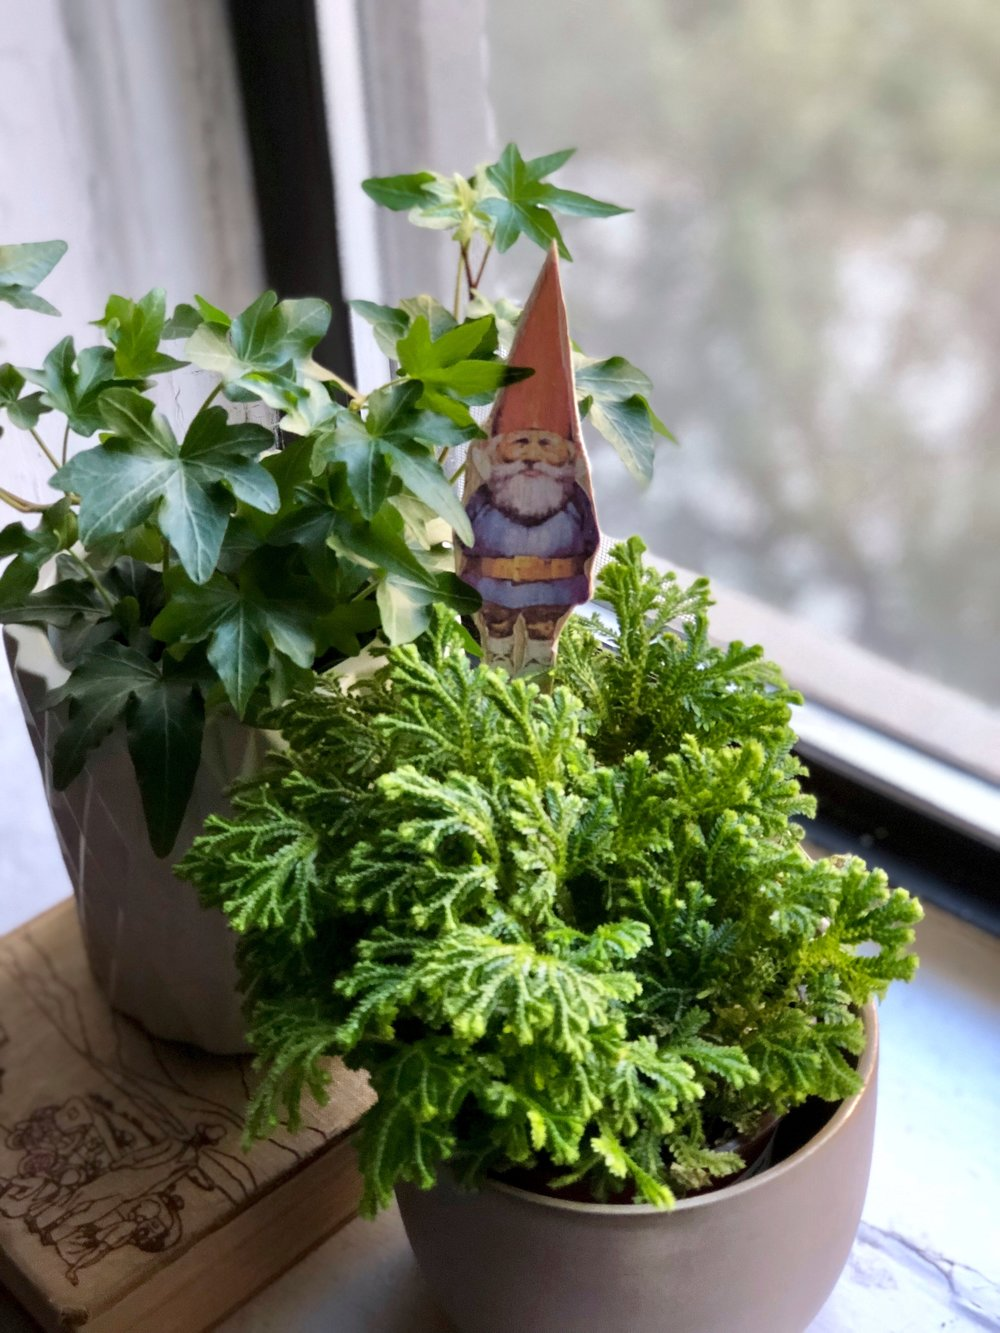 Easy Spring DIY's GNOME PLANTING BUDDY MATERIALS: Printed google gnome image, Balsa wood, Mod Podge, Craft knife